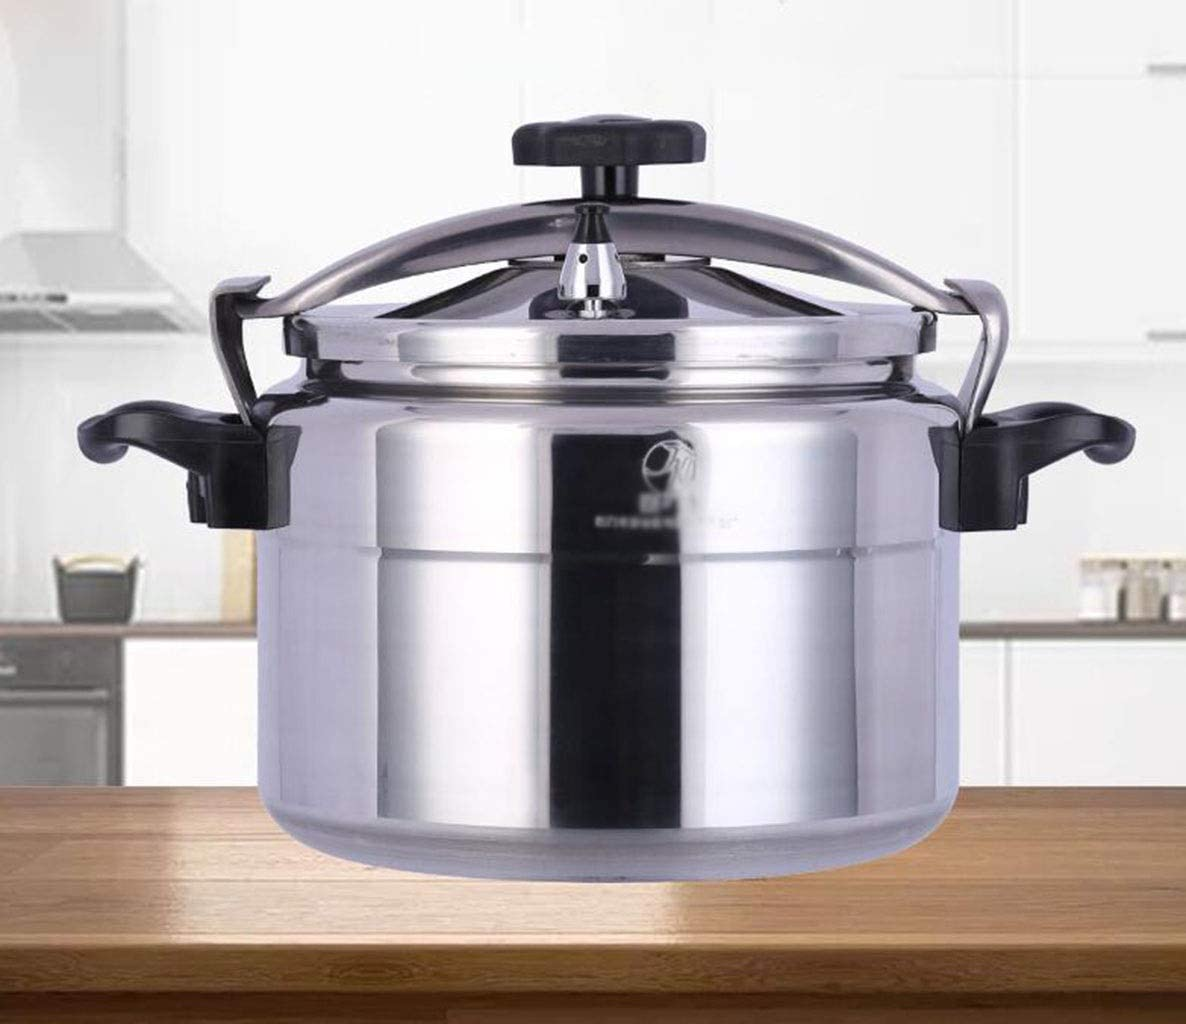 Large capacity pressure cooker aluminum alloy pressure cooker hotel explosion-proof pressure cooker family cooking pot multi-function pressure cooker induction cooker suitable for 9L-75L